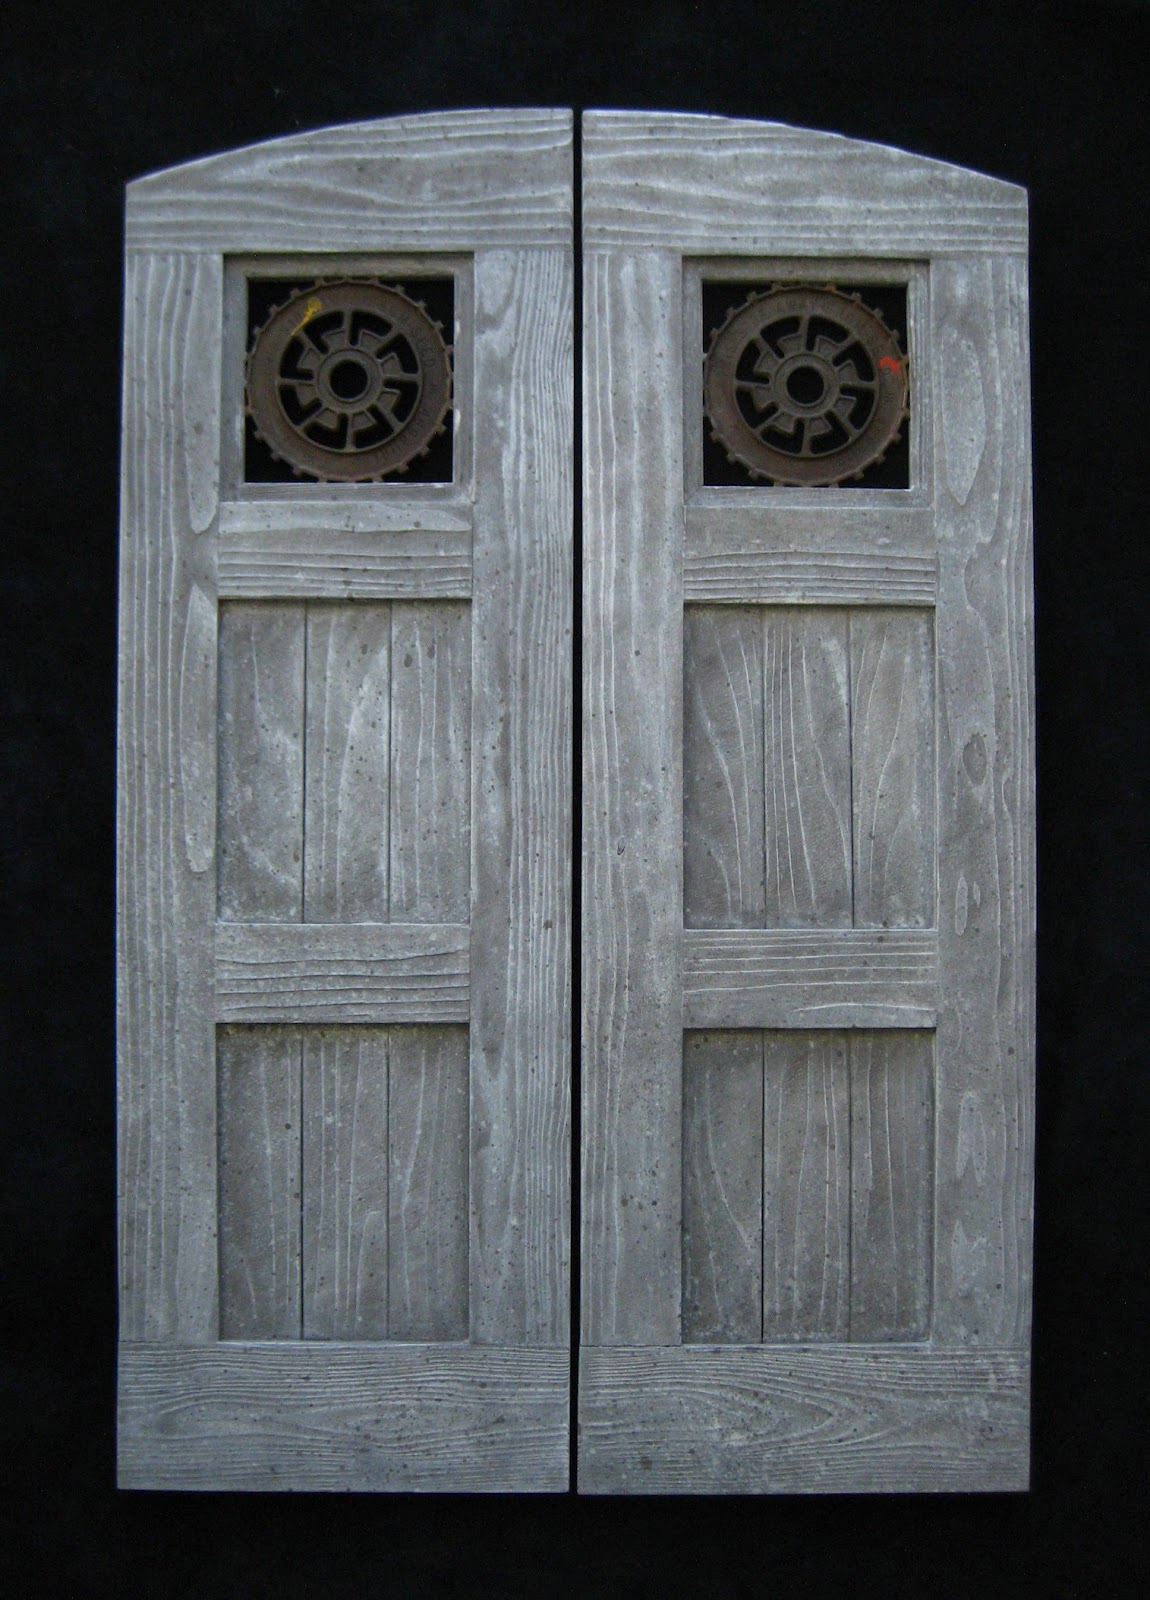 Custom cafe doors created for Carmel California clients for their home\u0027s Farmhouse Industrial decor. Doors were concepted designed and fabricated by me. & Man Cave Industries: Farmhouse Industrial Swinging Doors